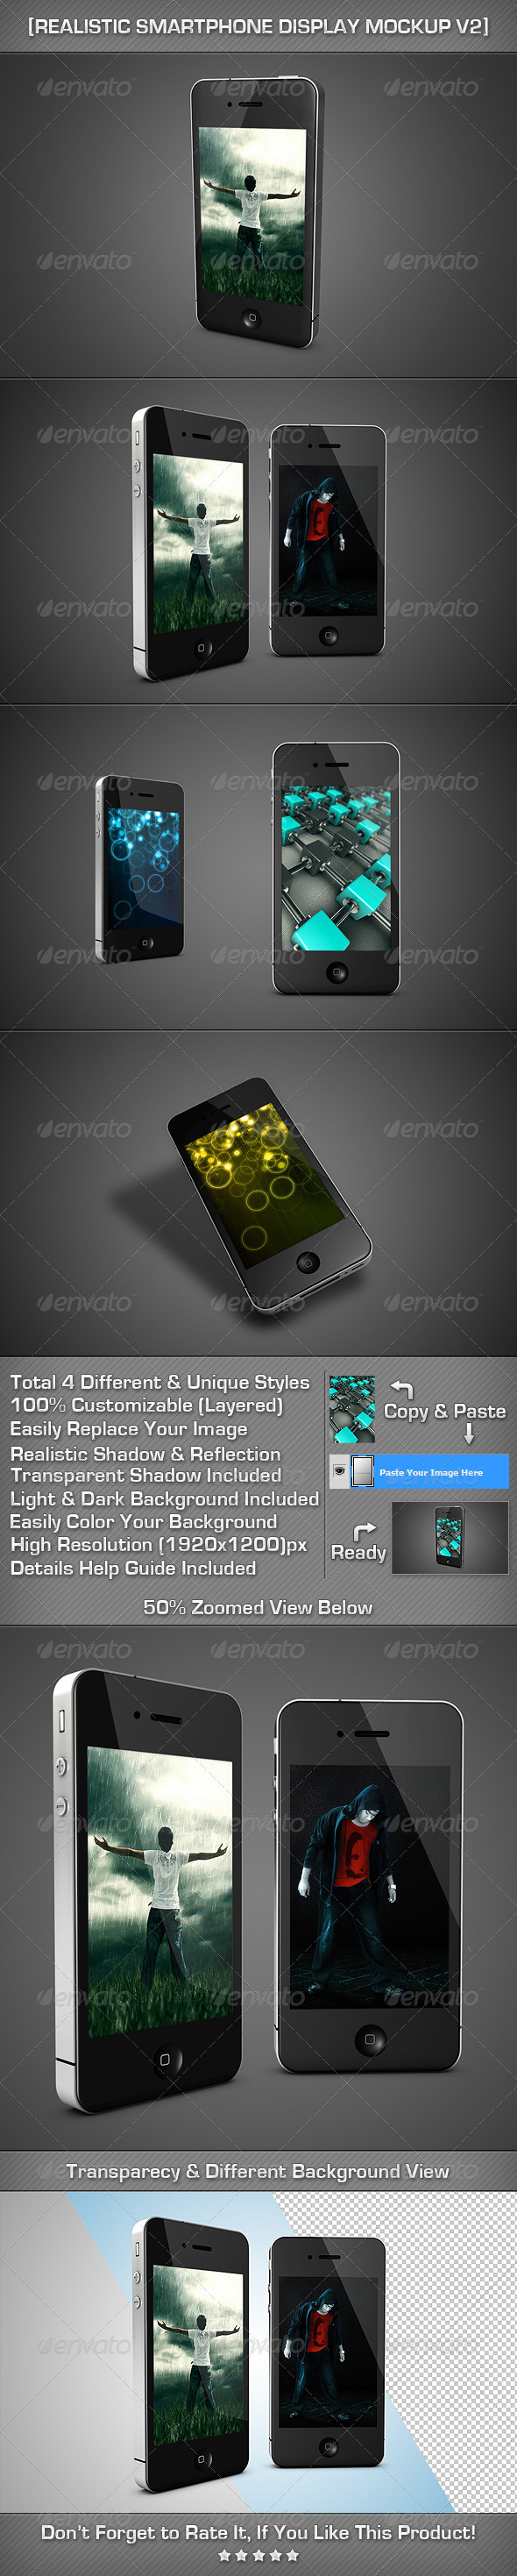 Realistic SmartPhone Display MockUp V2 - Mobile Displays